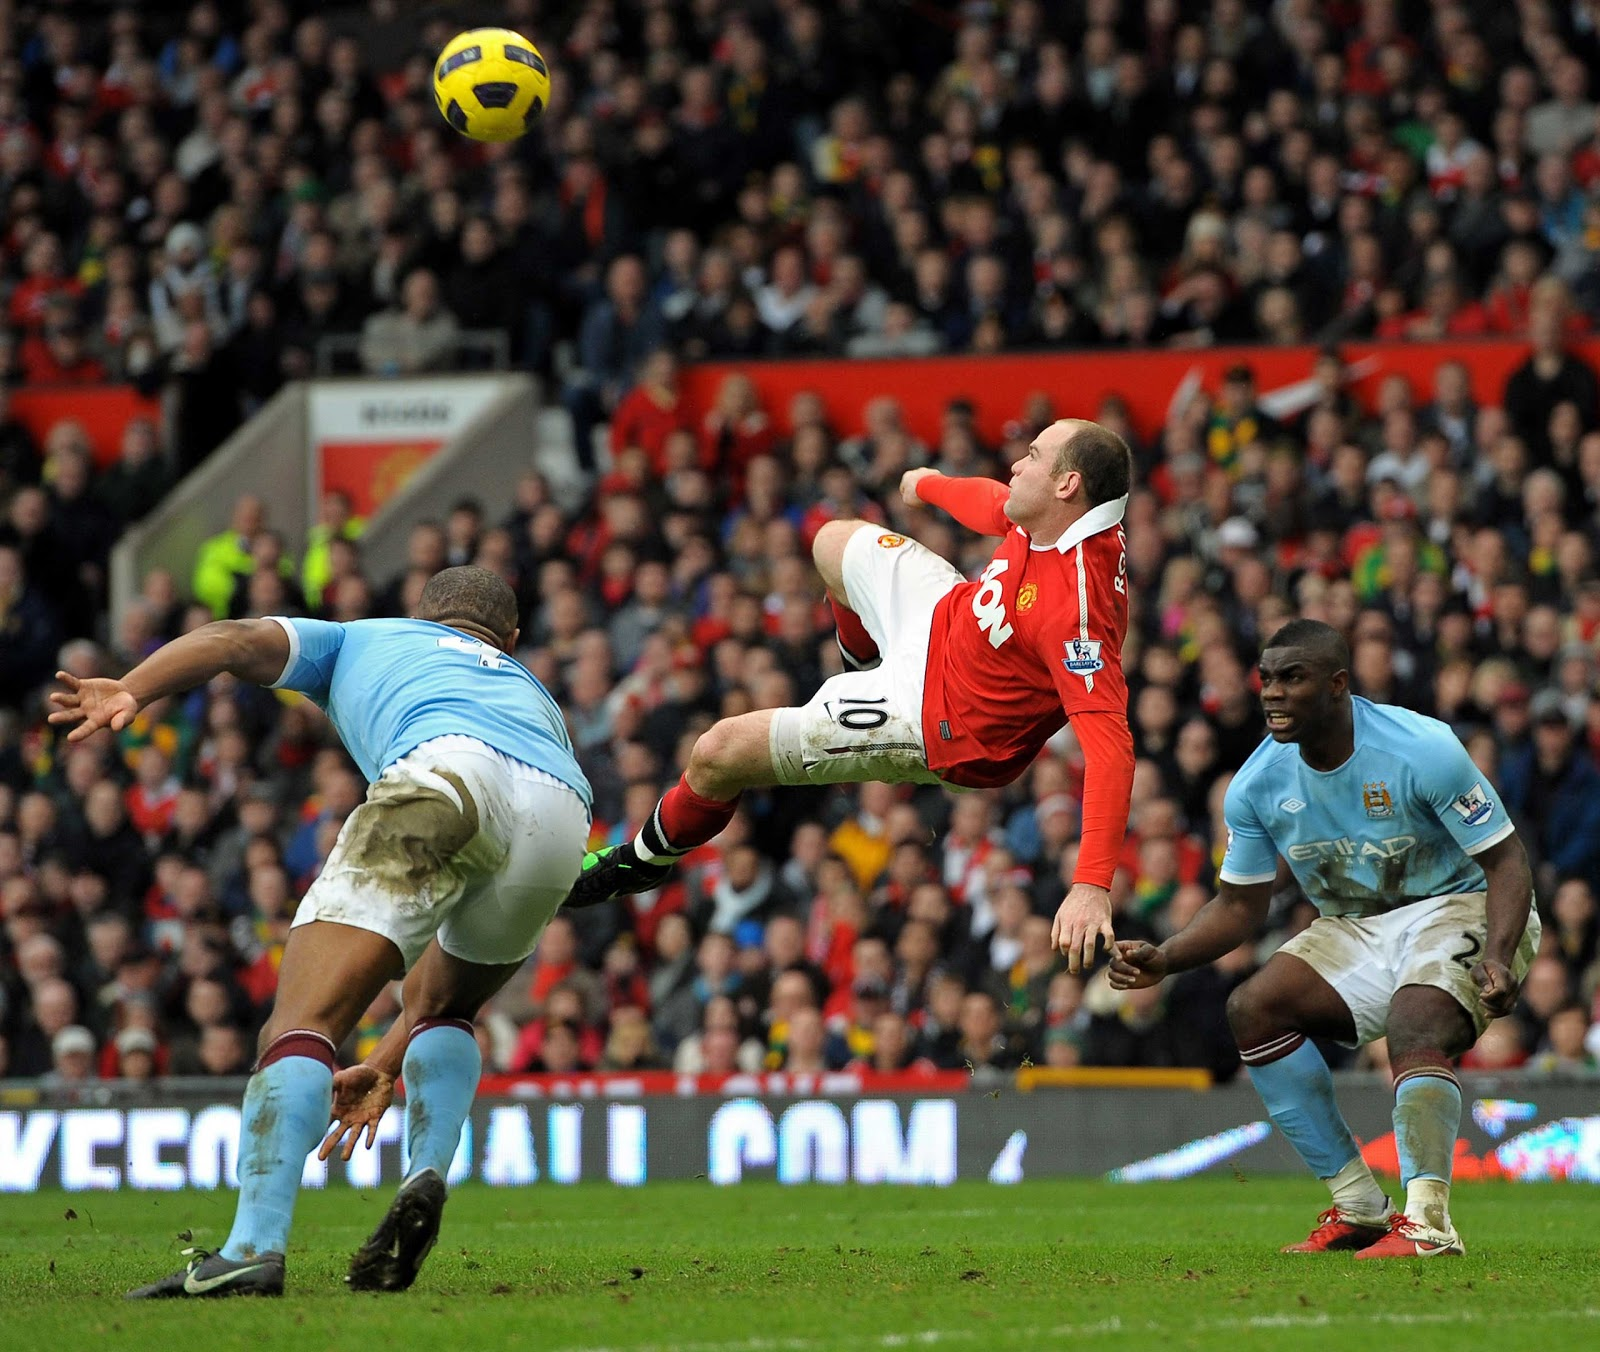 Wayne Rooney Goal Bicycle Kick Wayne Rooney bicycle kick wallpapers Desktop Backgrounds